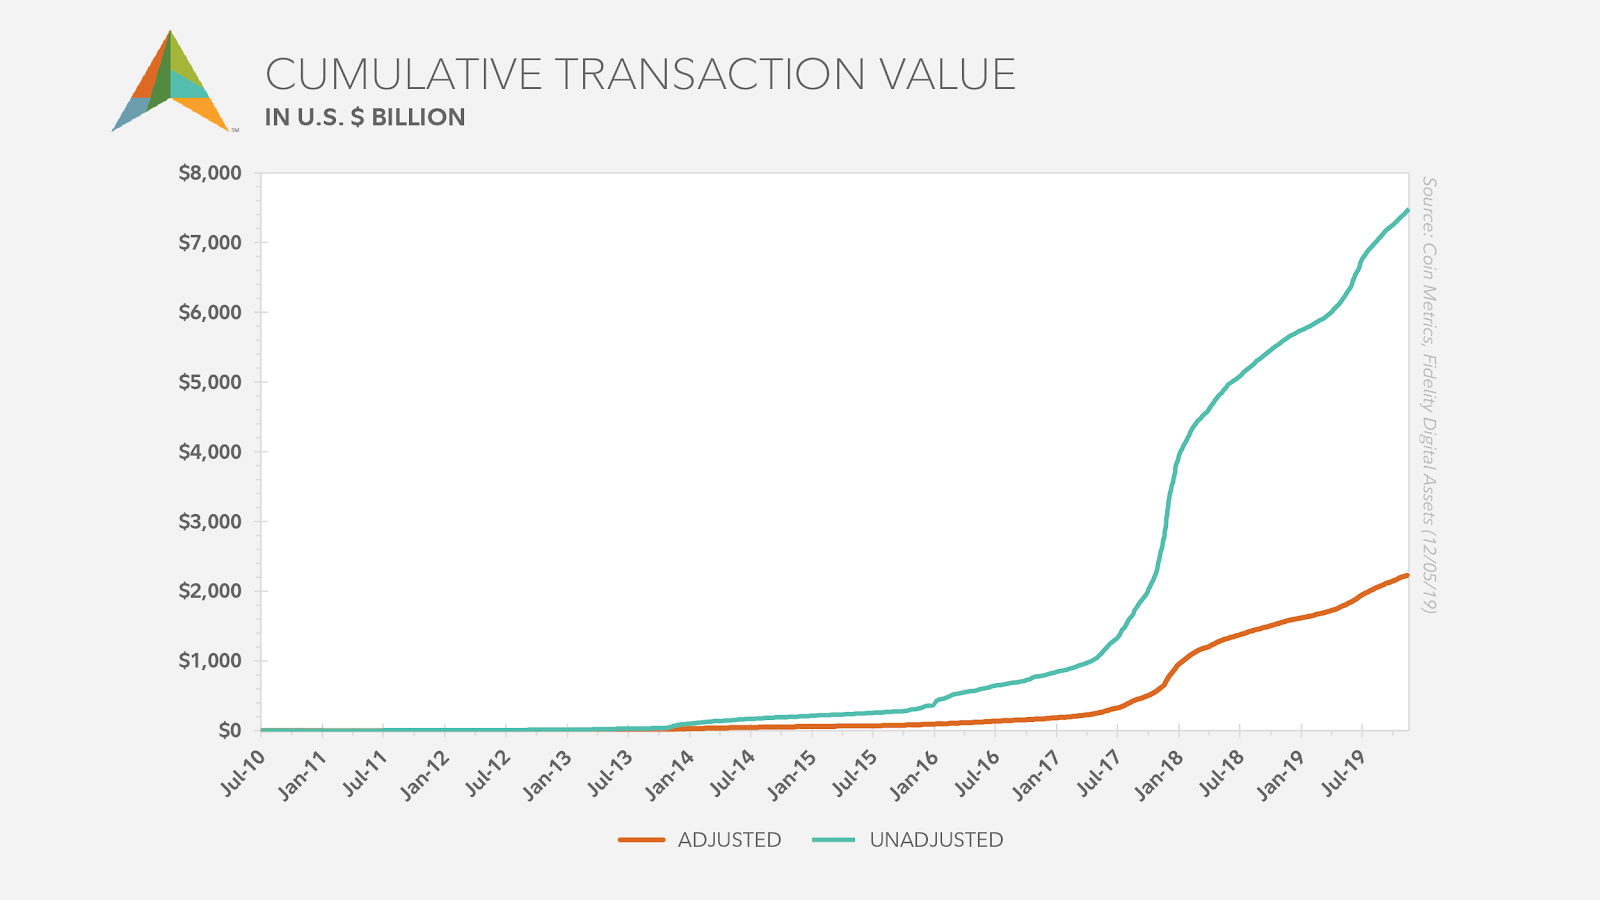 Chart showing the difference between cumulative raw transaction value and the adjusted value